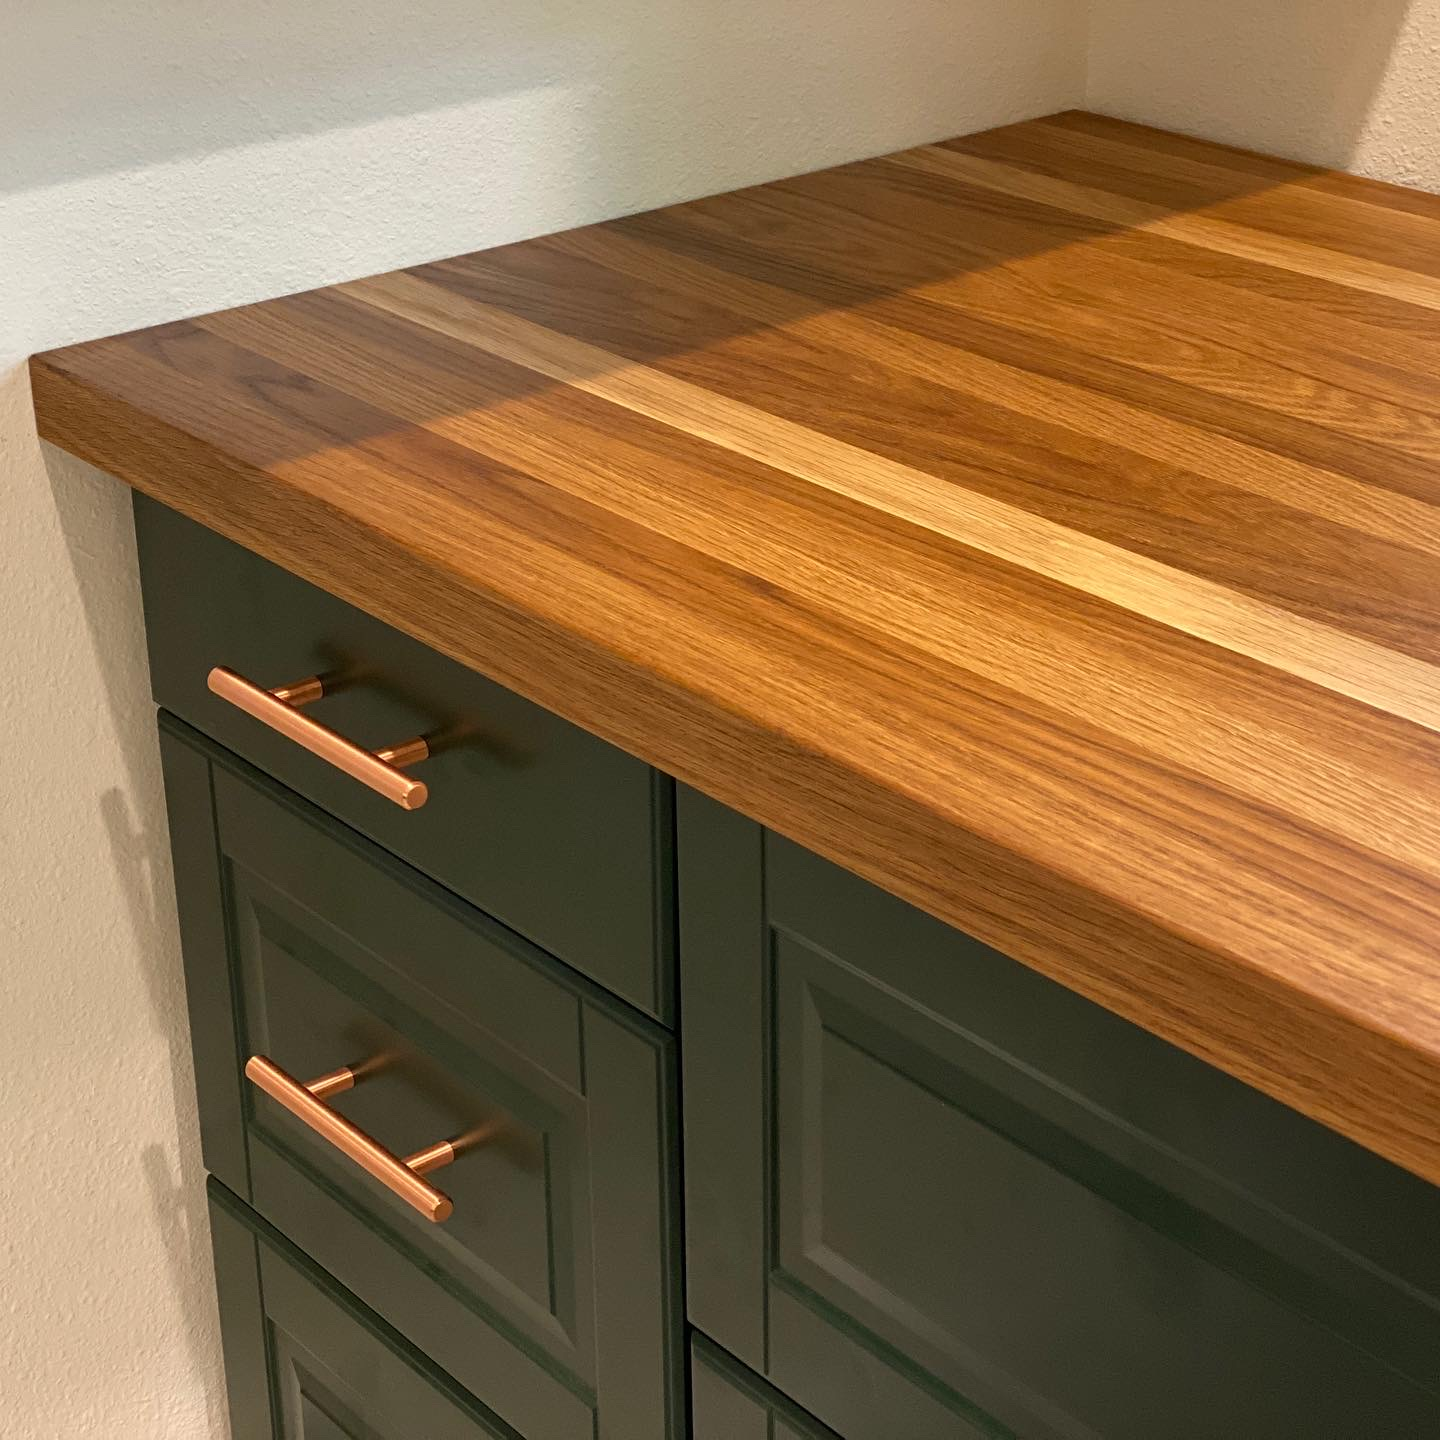 White Oak Butcher Block Counter Top